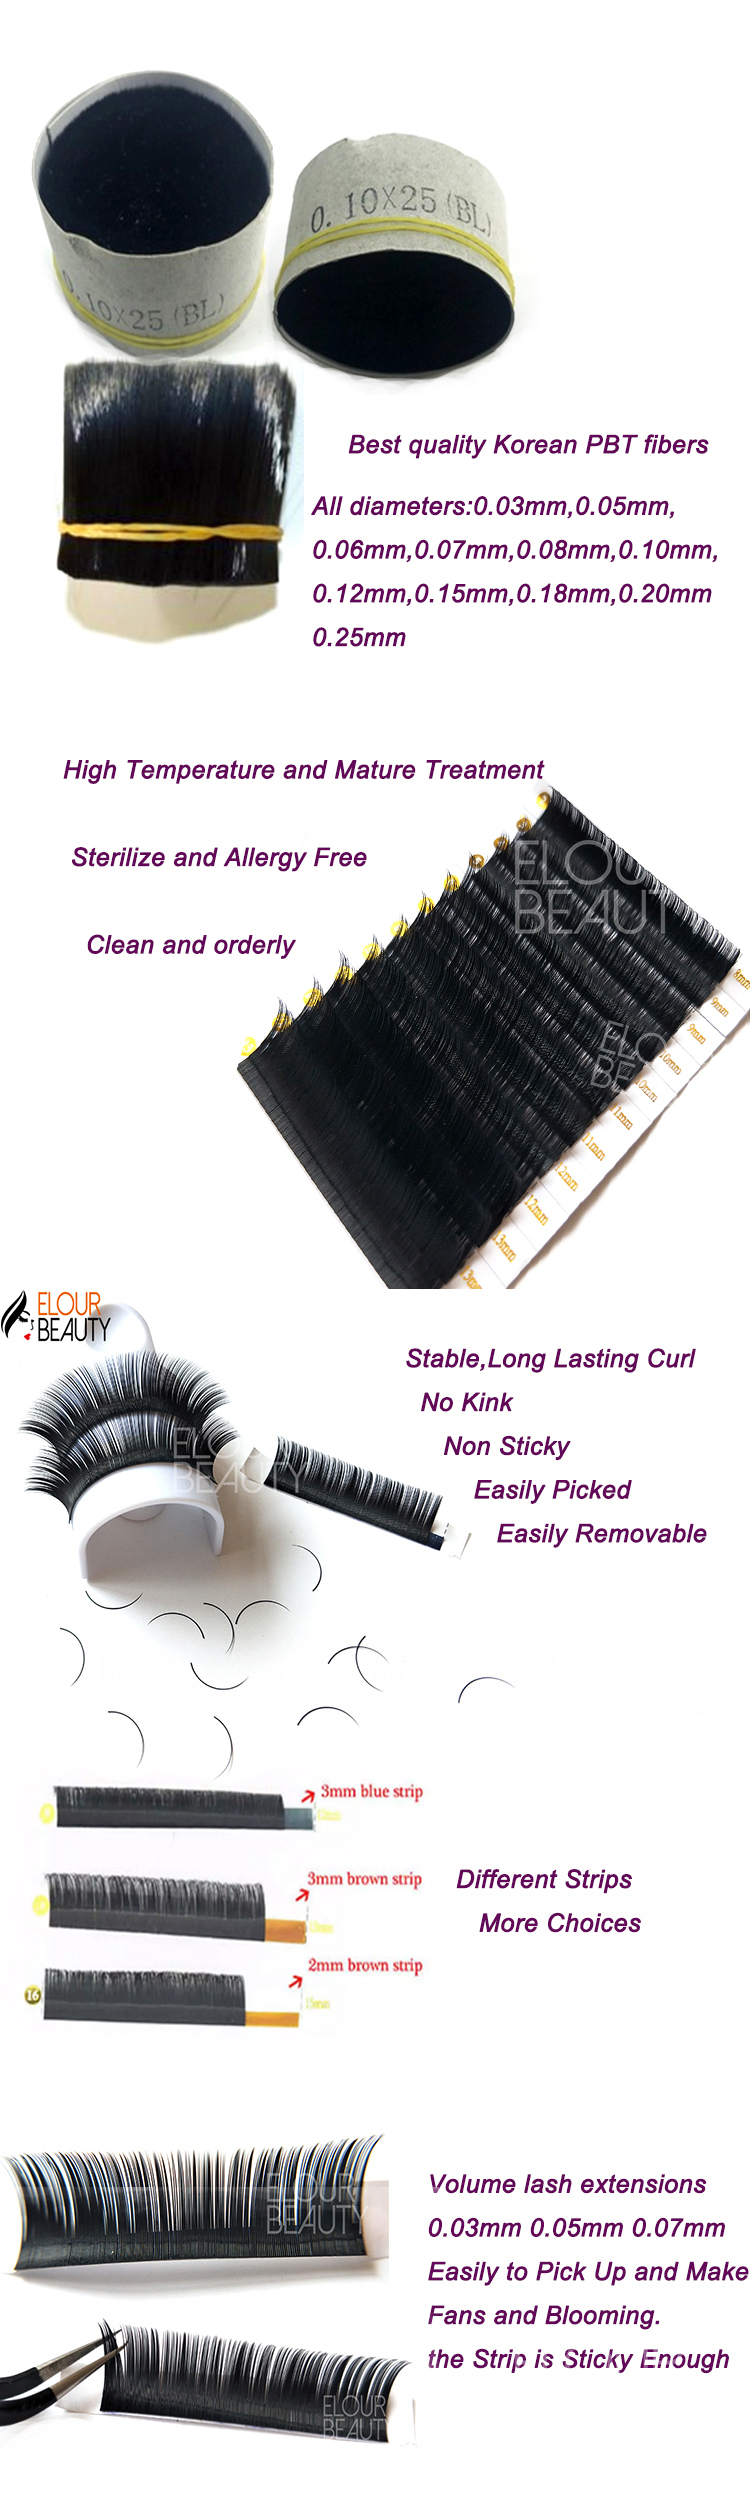 advantages-of-elour-eyelash-extension.jpg